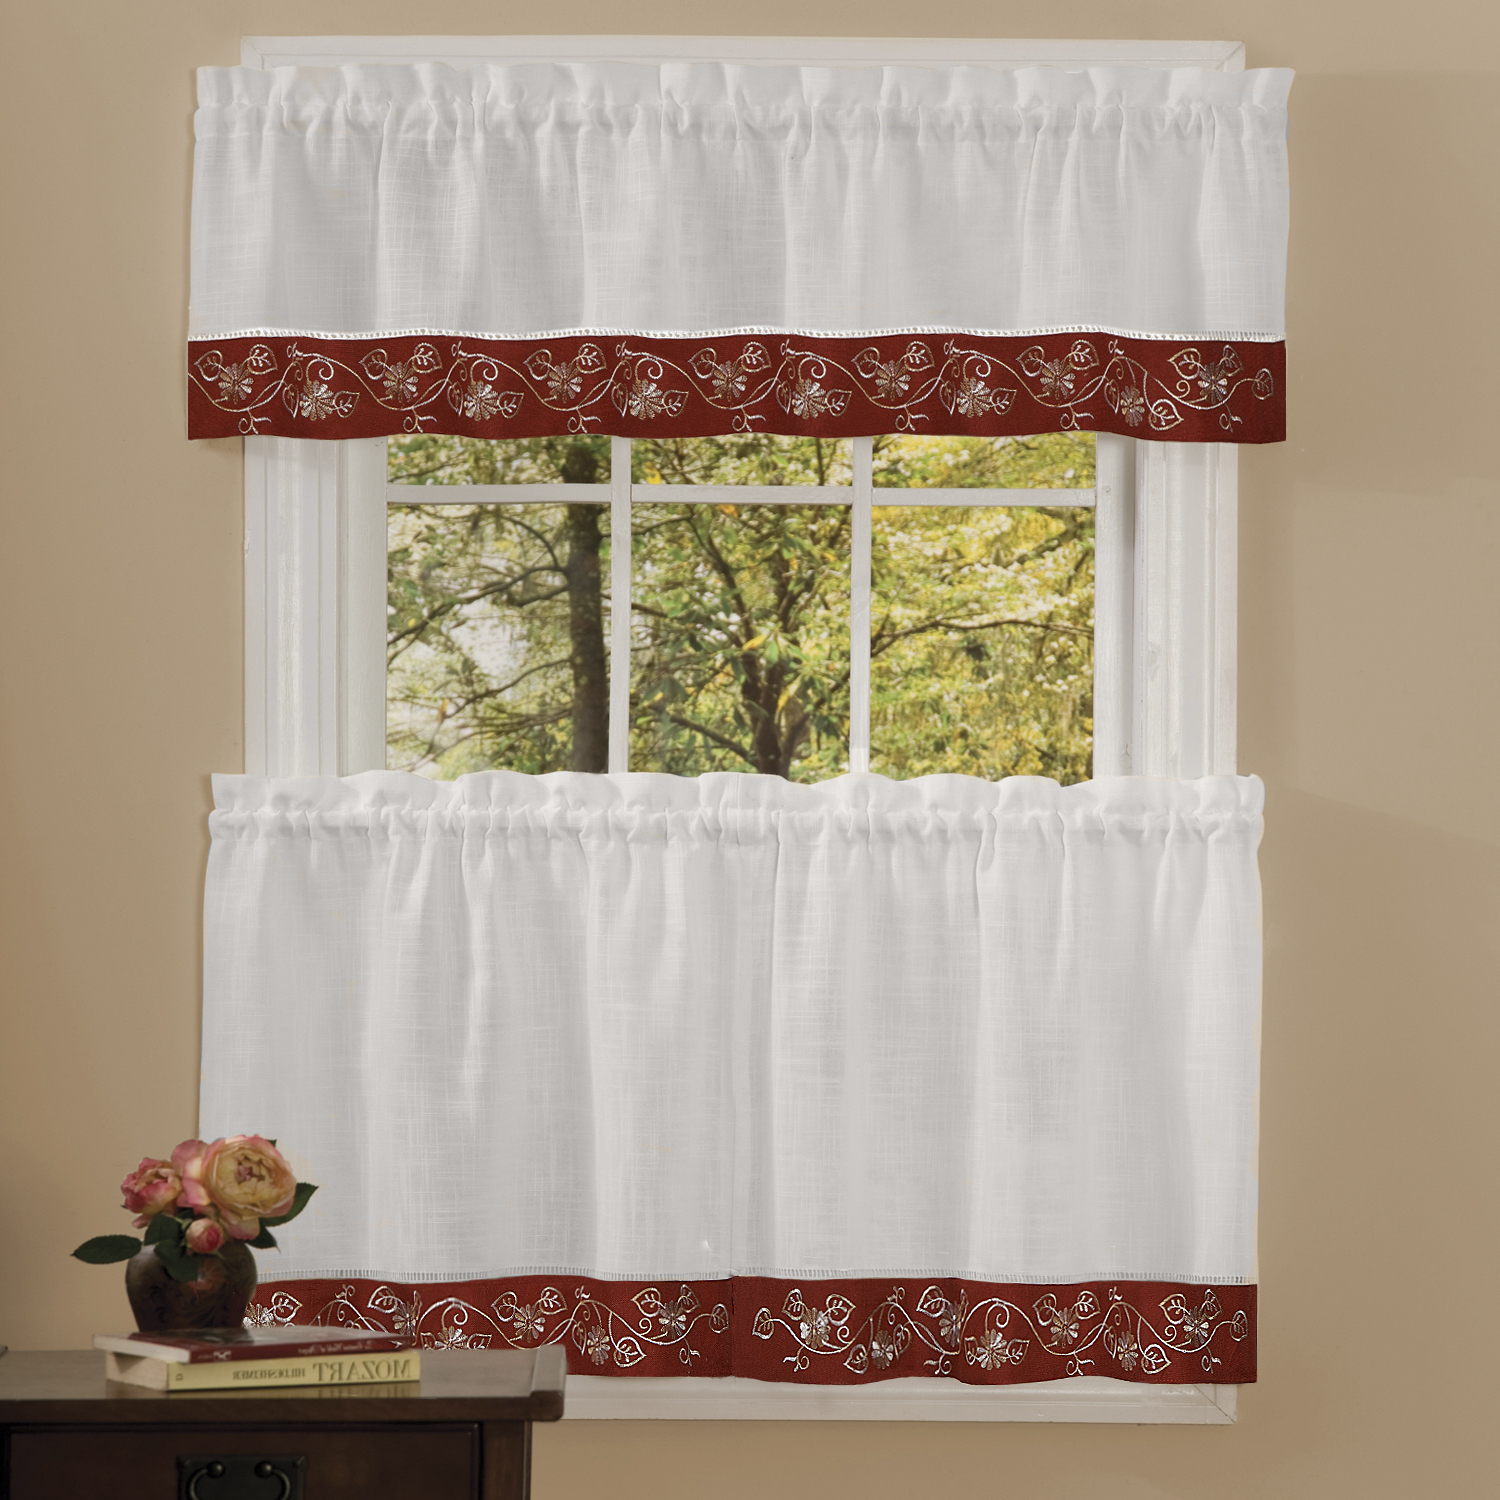 Details About Oakwood Linen Style Kitchen Window Curtains Tiers Or Valance Burgundy For Most Popular Oakwood Linen Style Decorative Curtain Tier Sets (View 4 of 20)